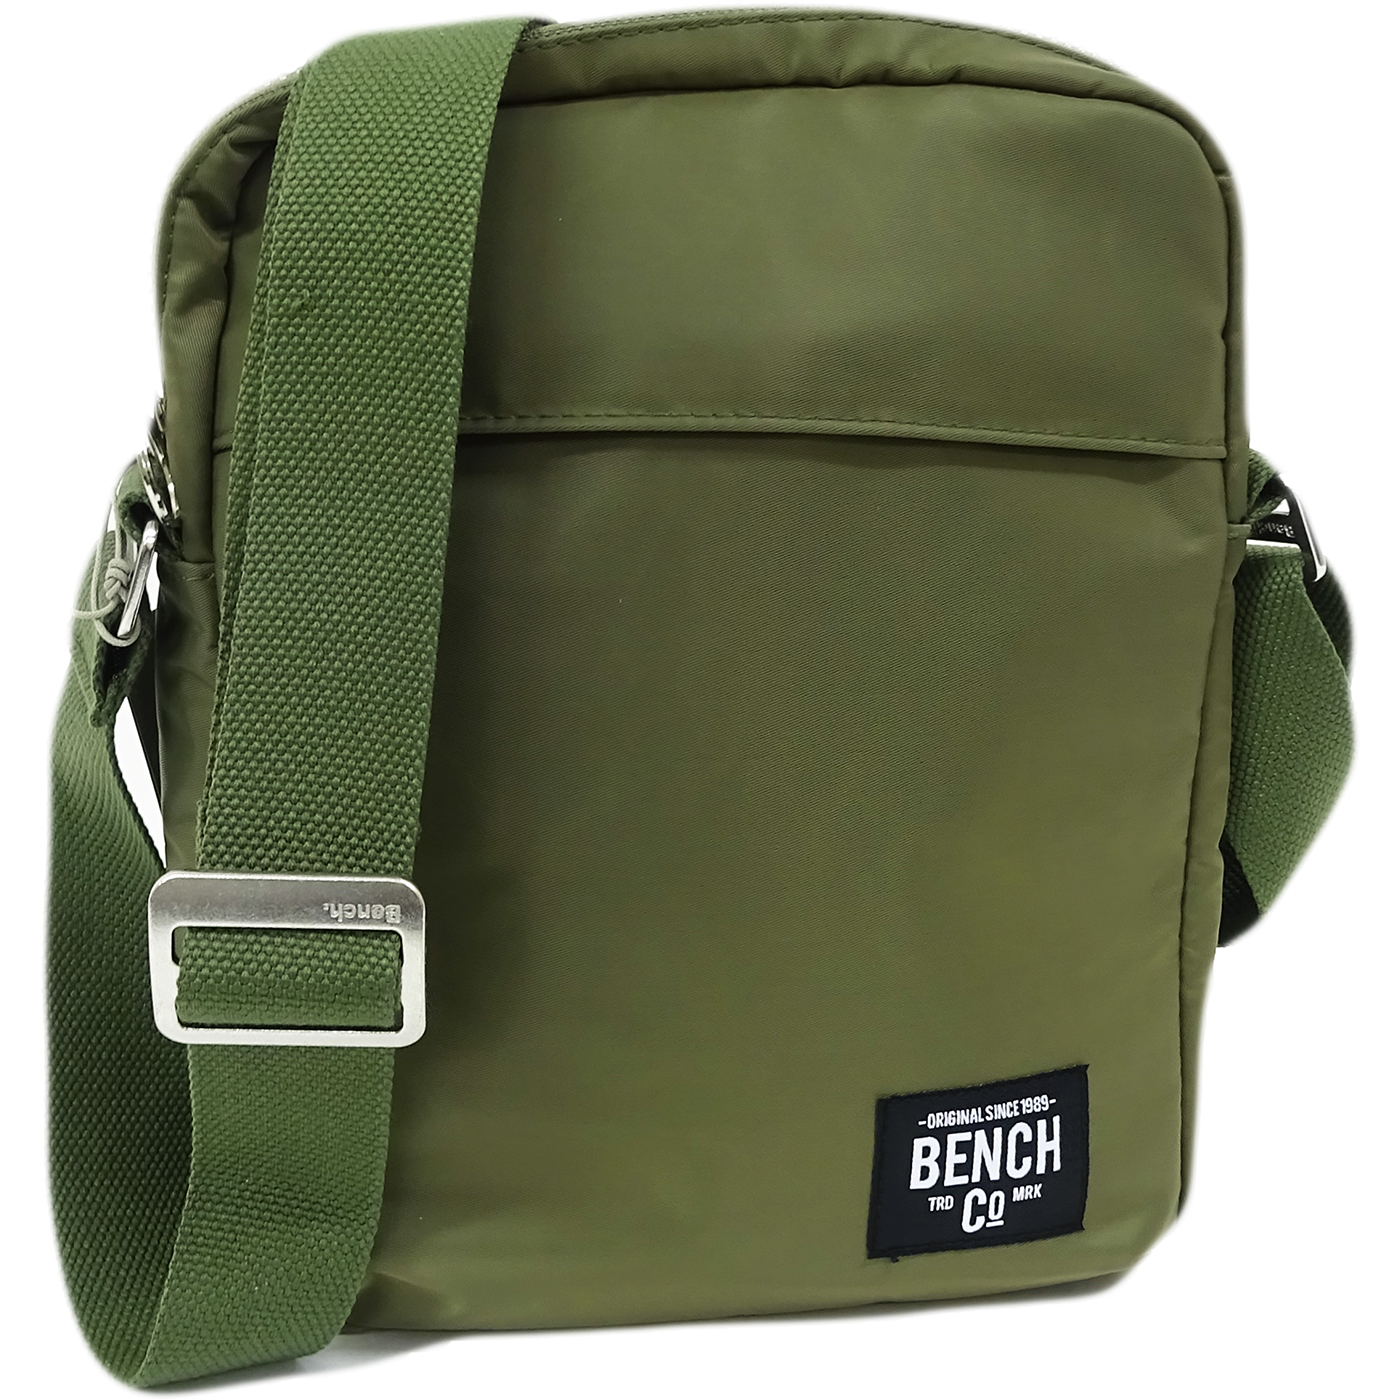 Bench Small Side Bag / Man Bag - 0840 | View All | Mr H Menswear